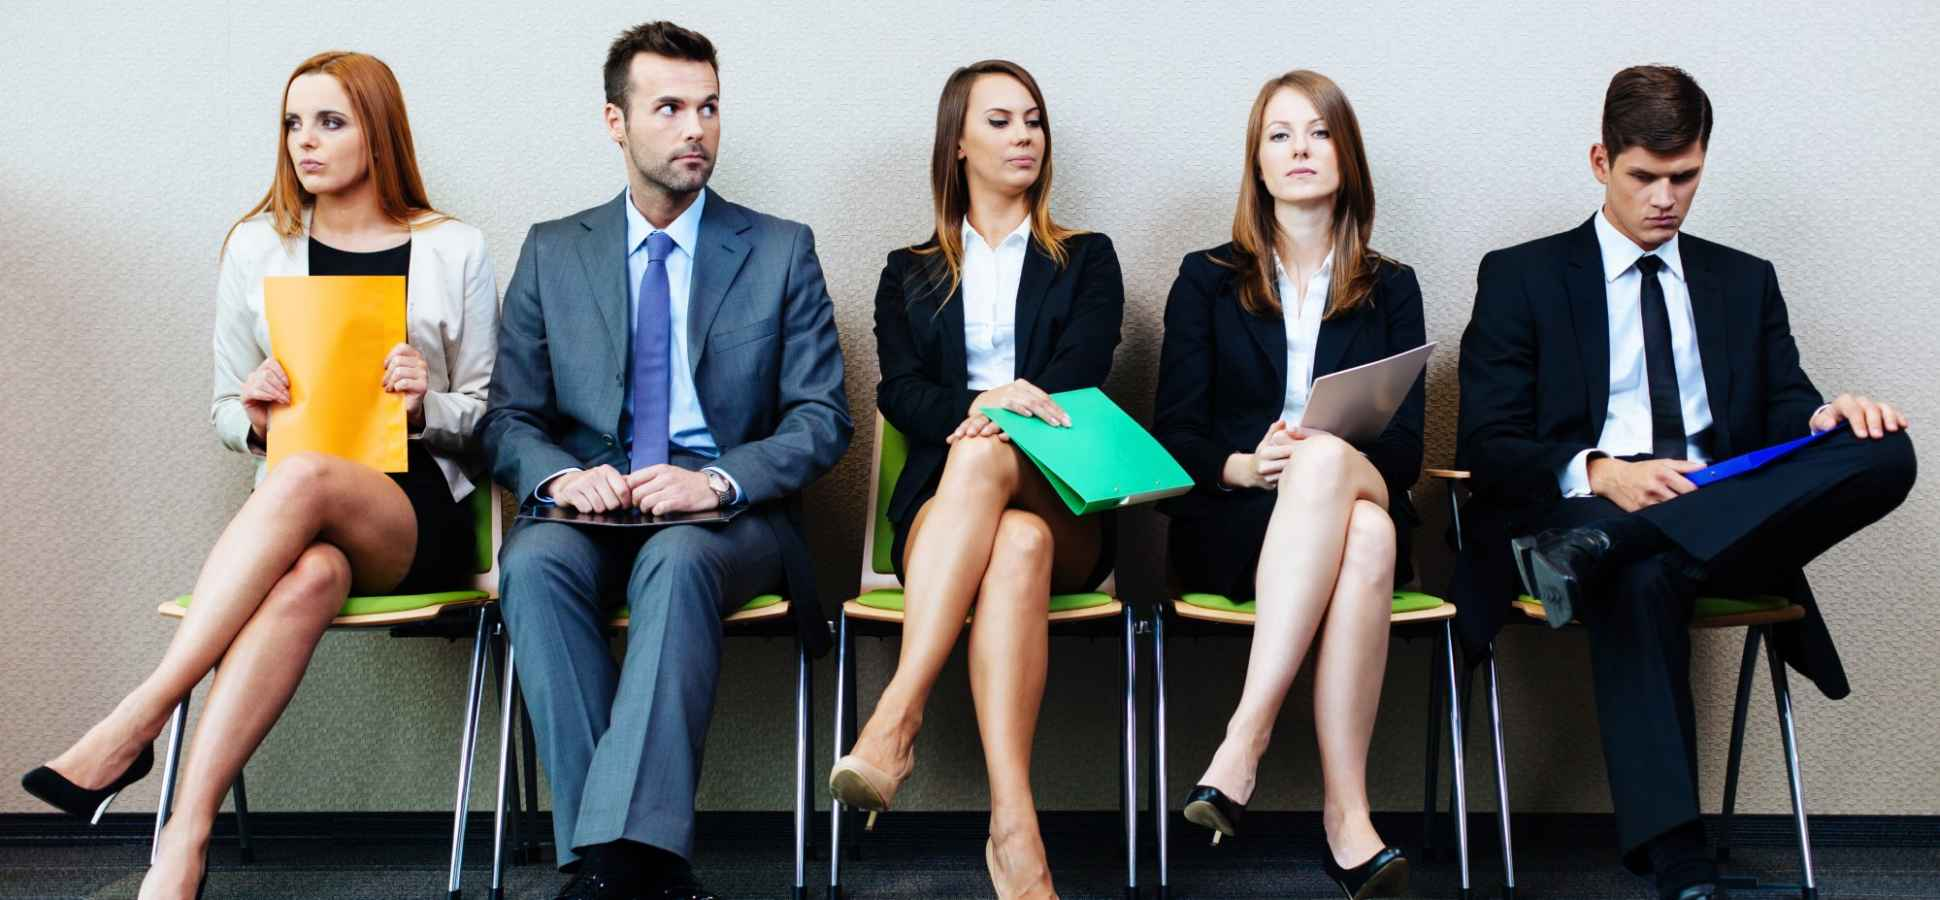 13 Etiquette Strategies to Ace a Job Interview